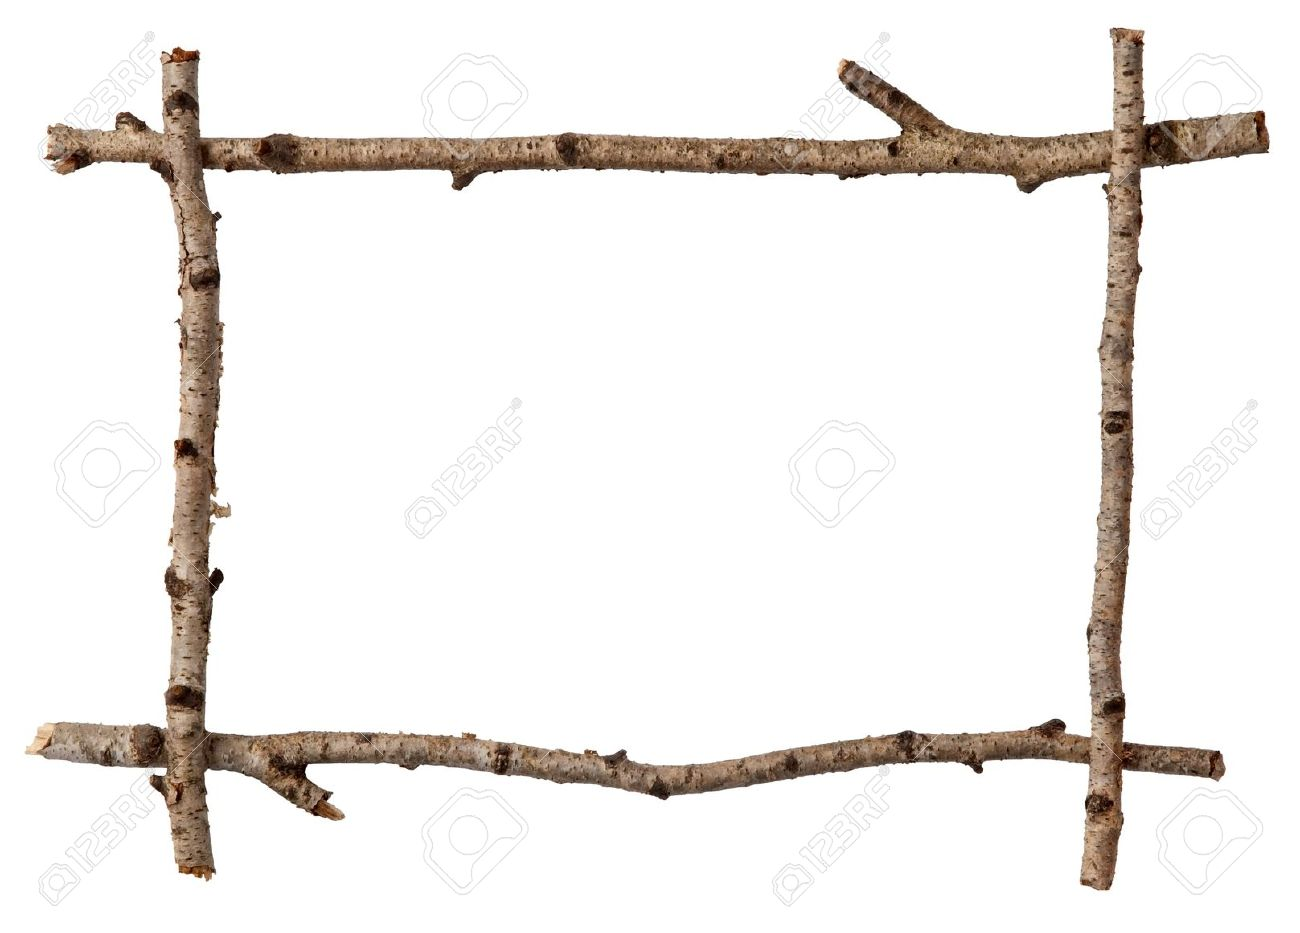 Twig frame stock photo picture and royalty free image image twig frame stock photo 10864933 jeuxipadfo Choice Image